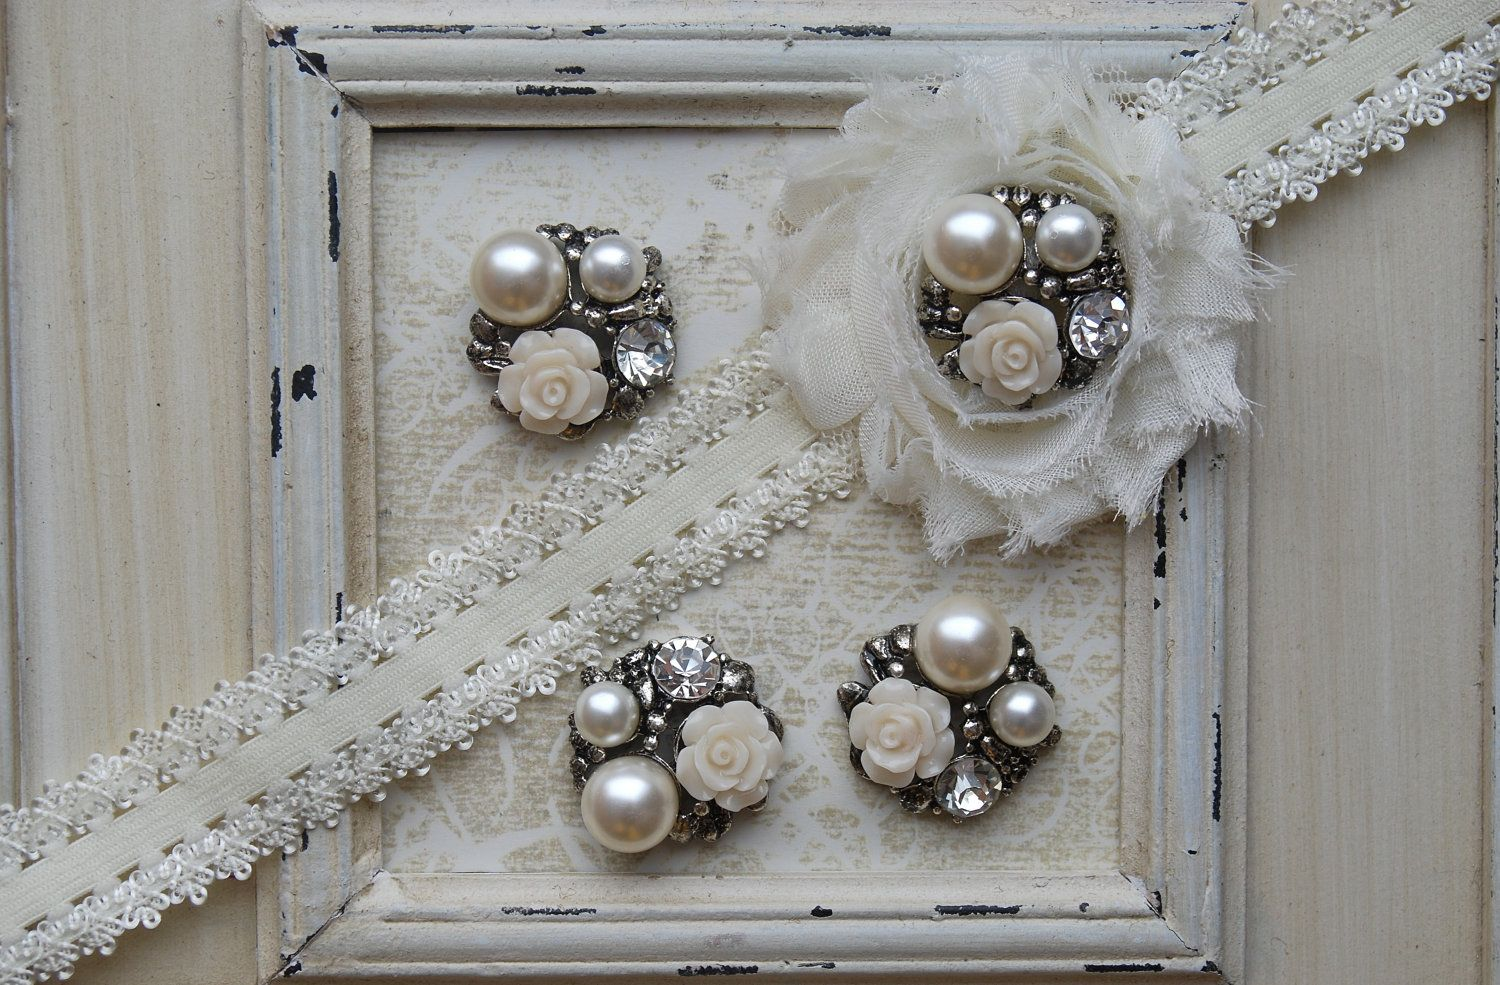 4 Metal IVORY Flower Pearl Cluster Buttons Flatback